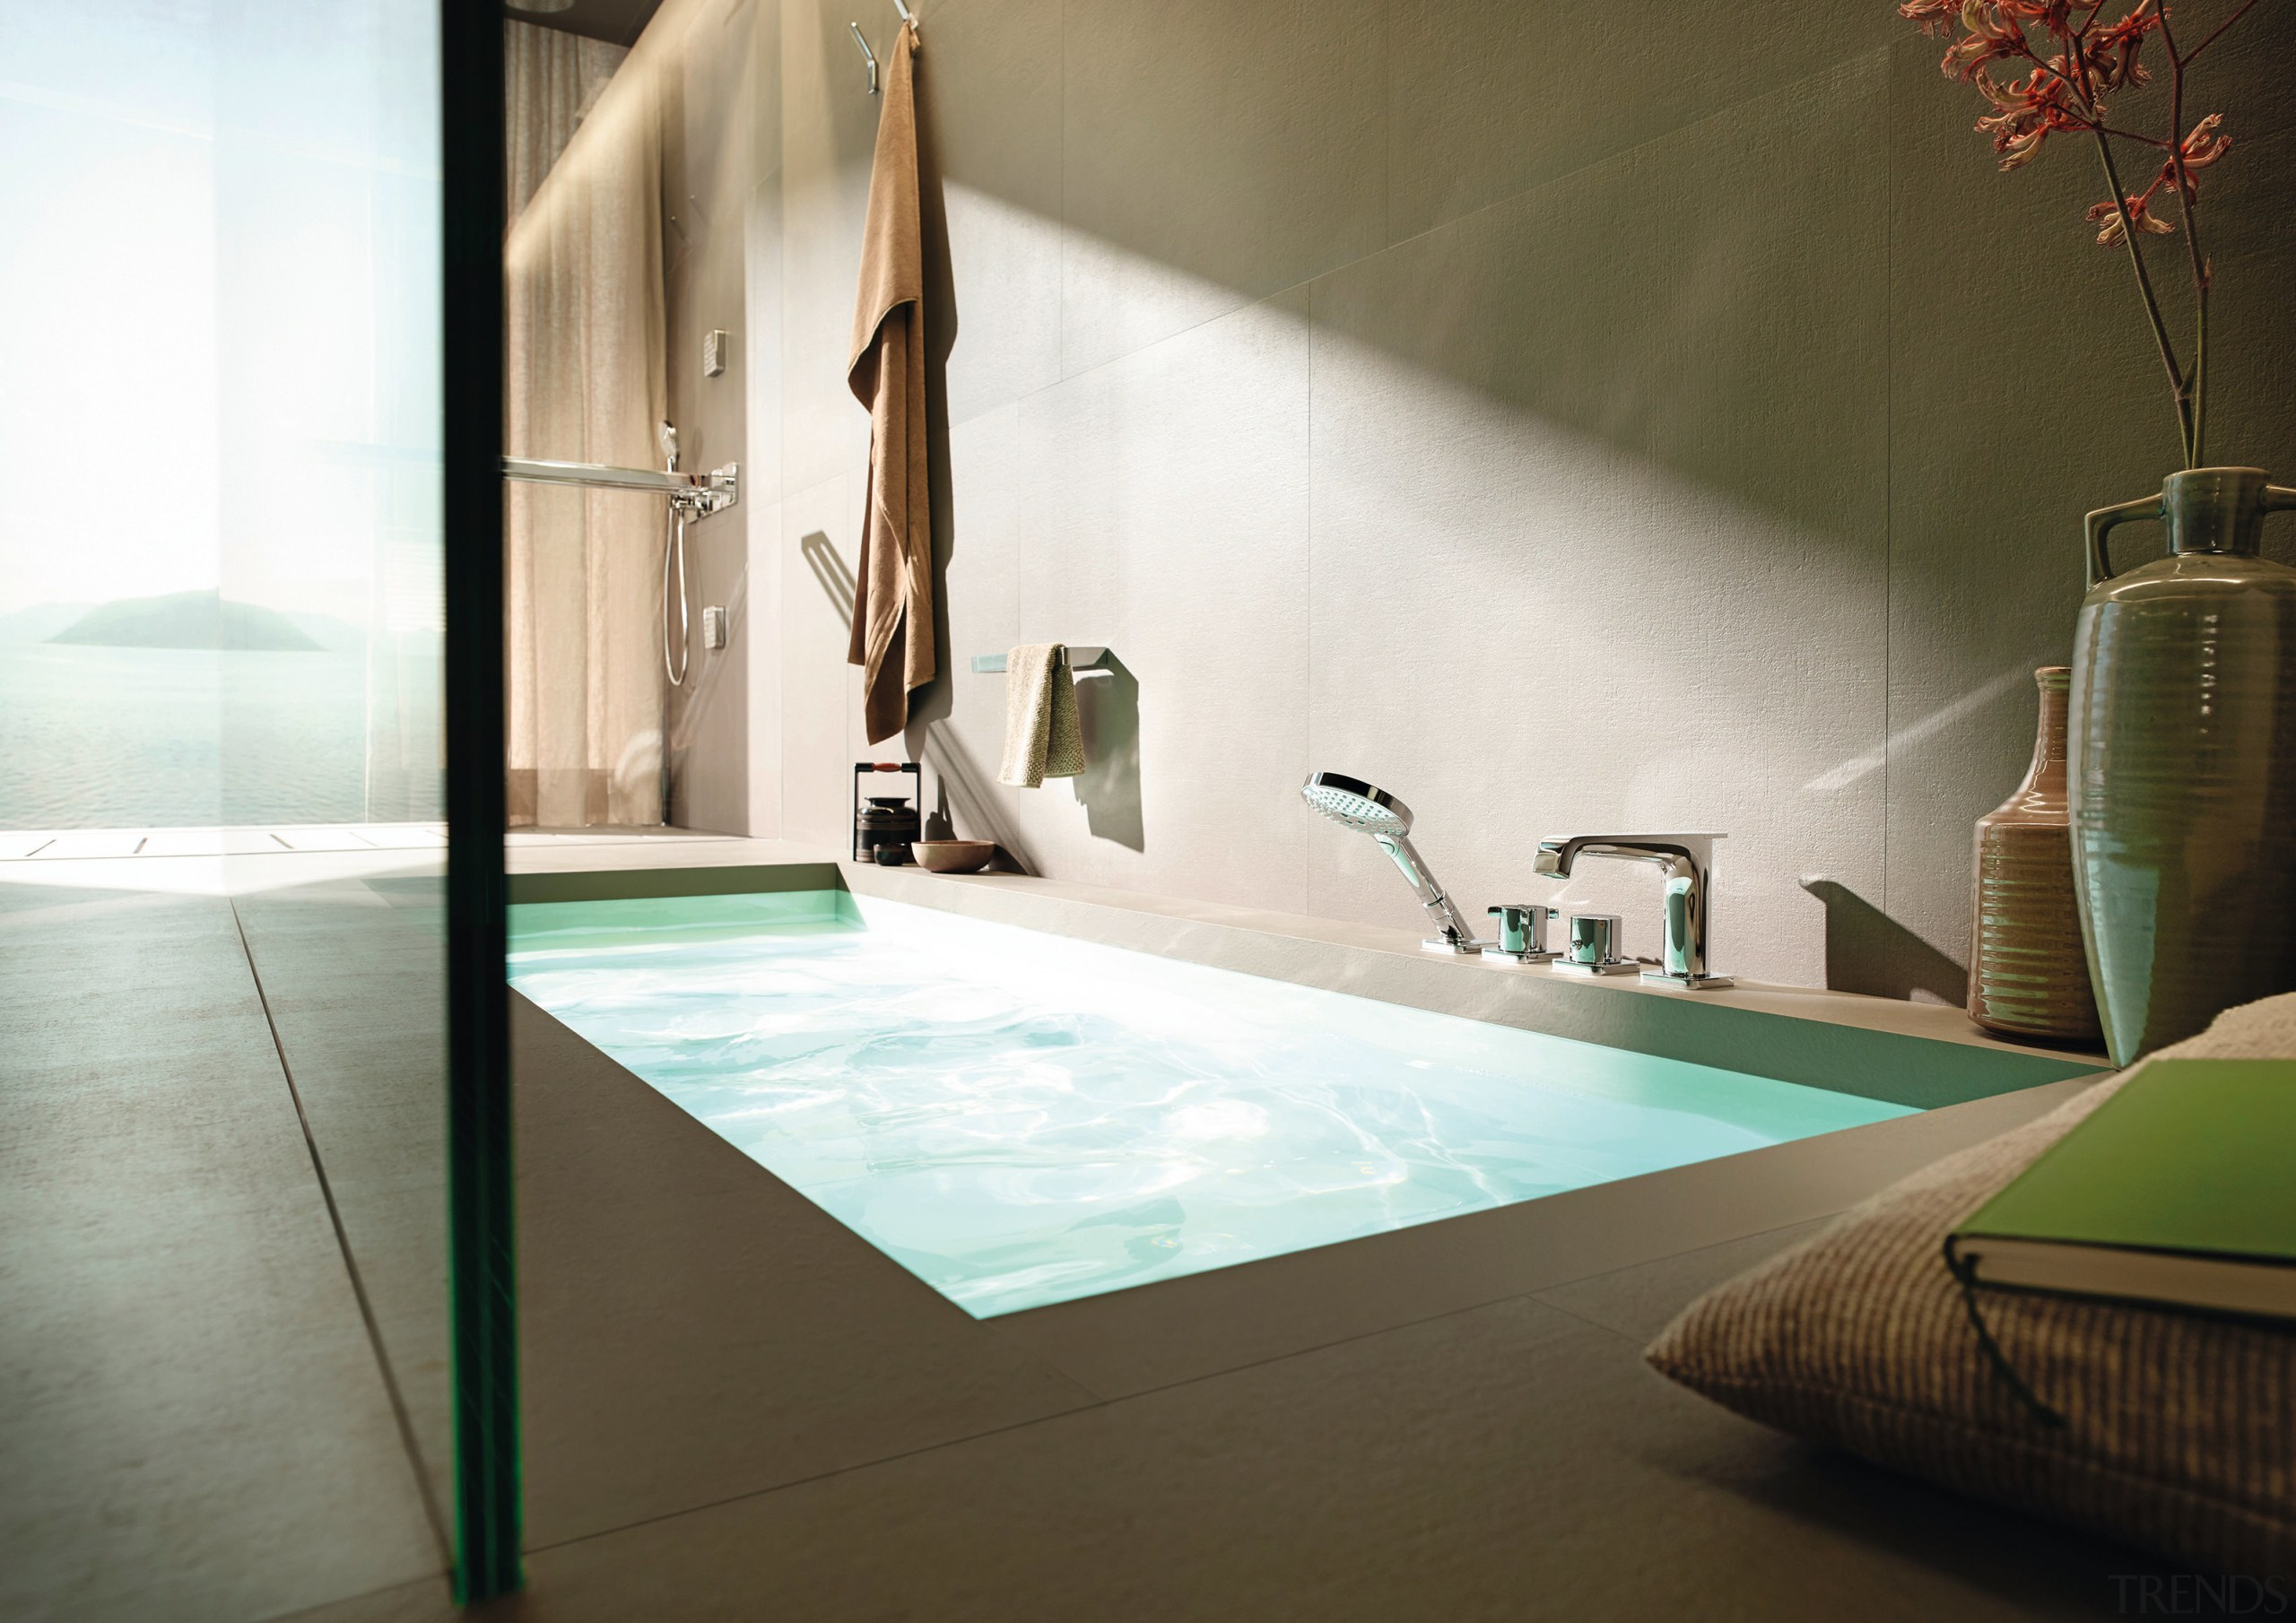 Making a splash  Hansgrohes sculptural Axor Citterio bathroom, bathtub, floor, glass, interior design, plumbing fixture, property, room, brown, white